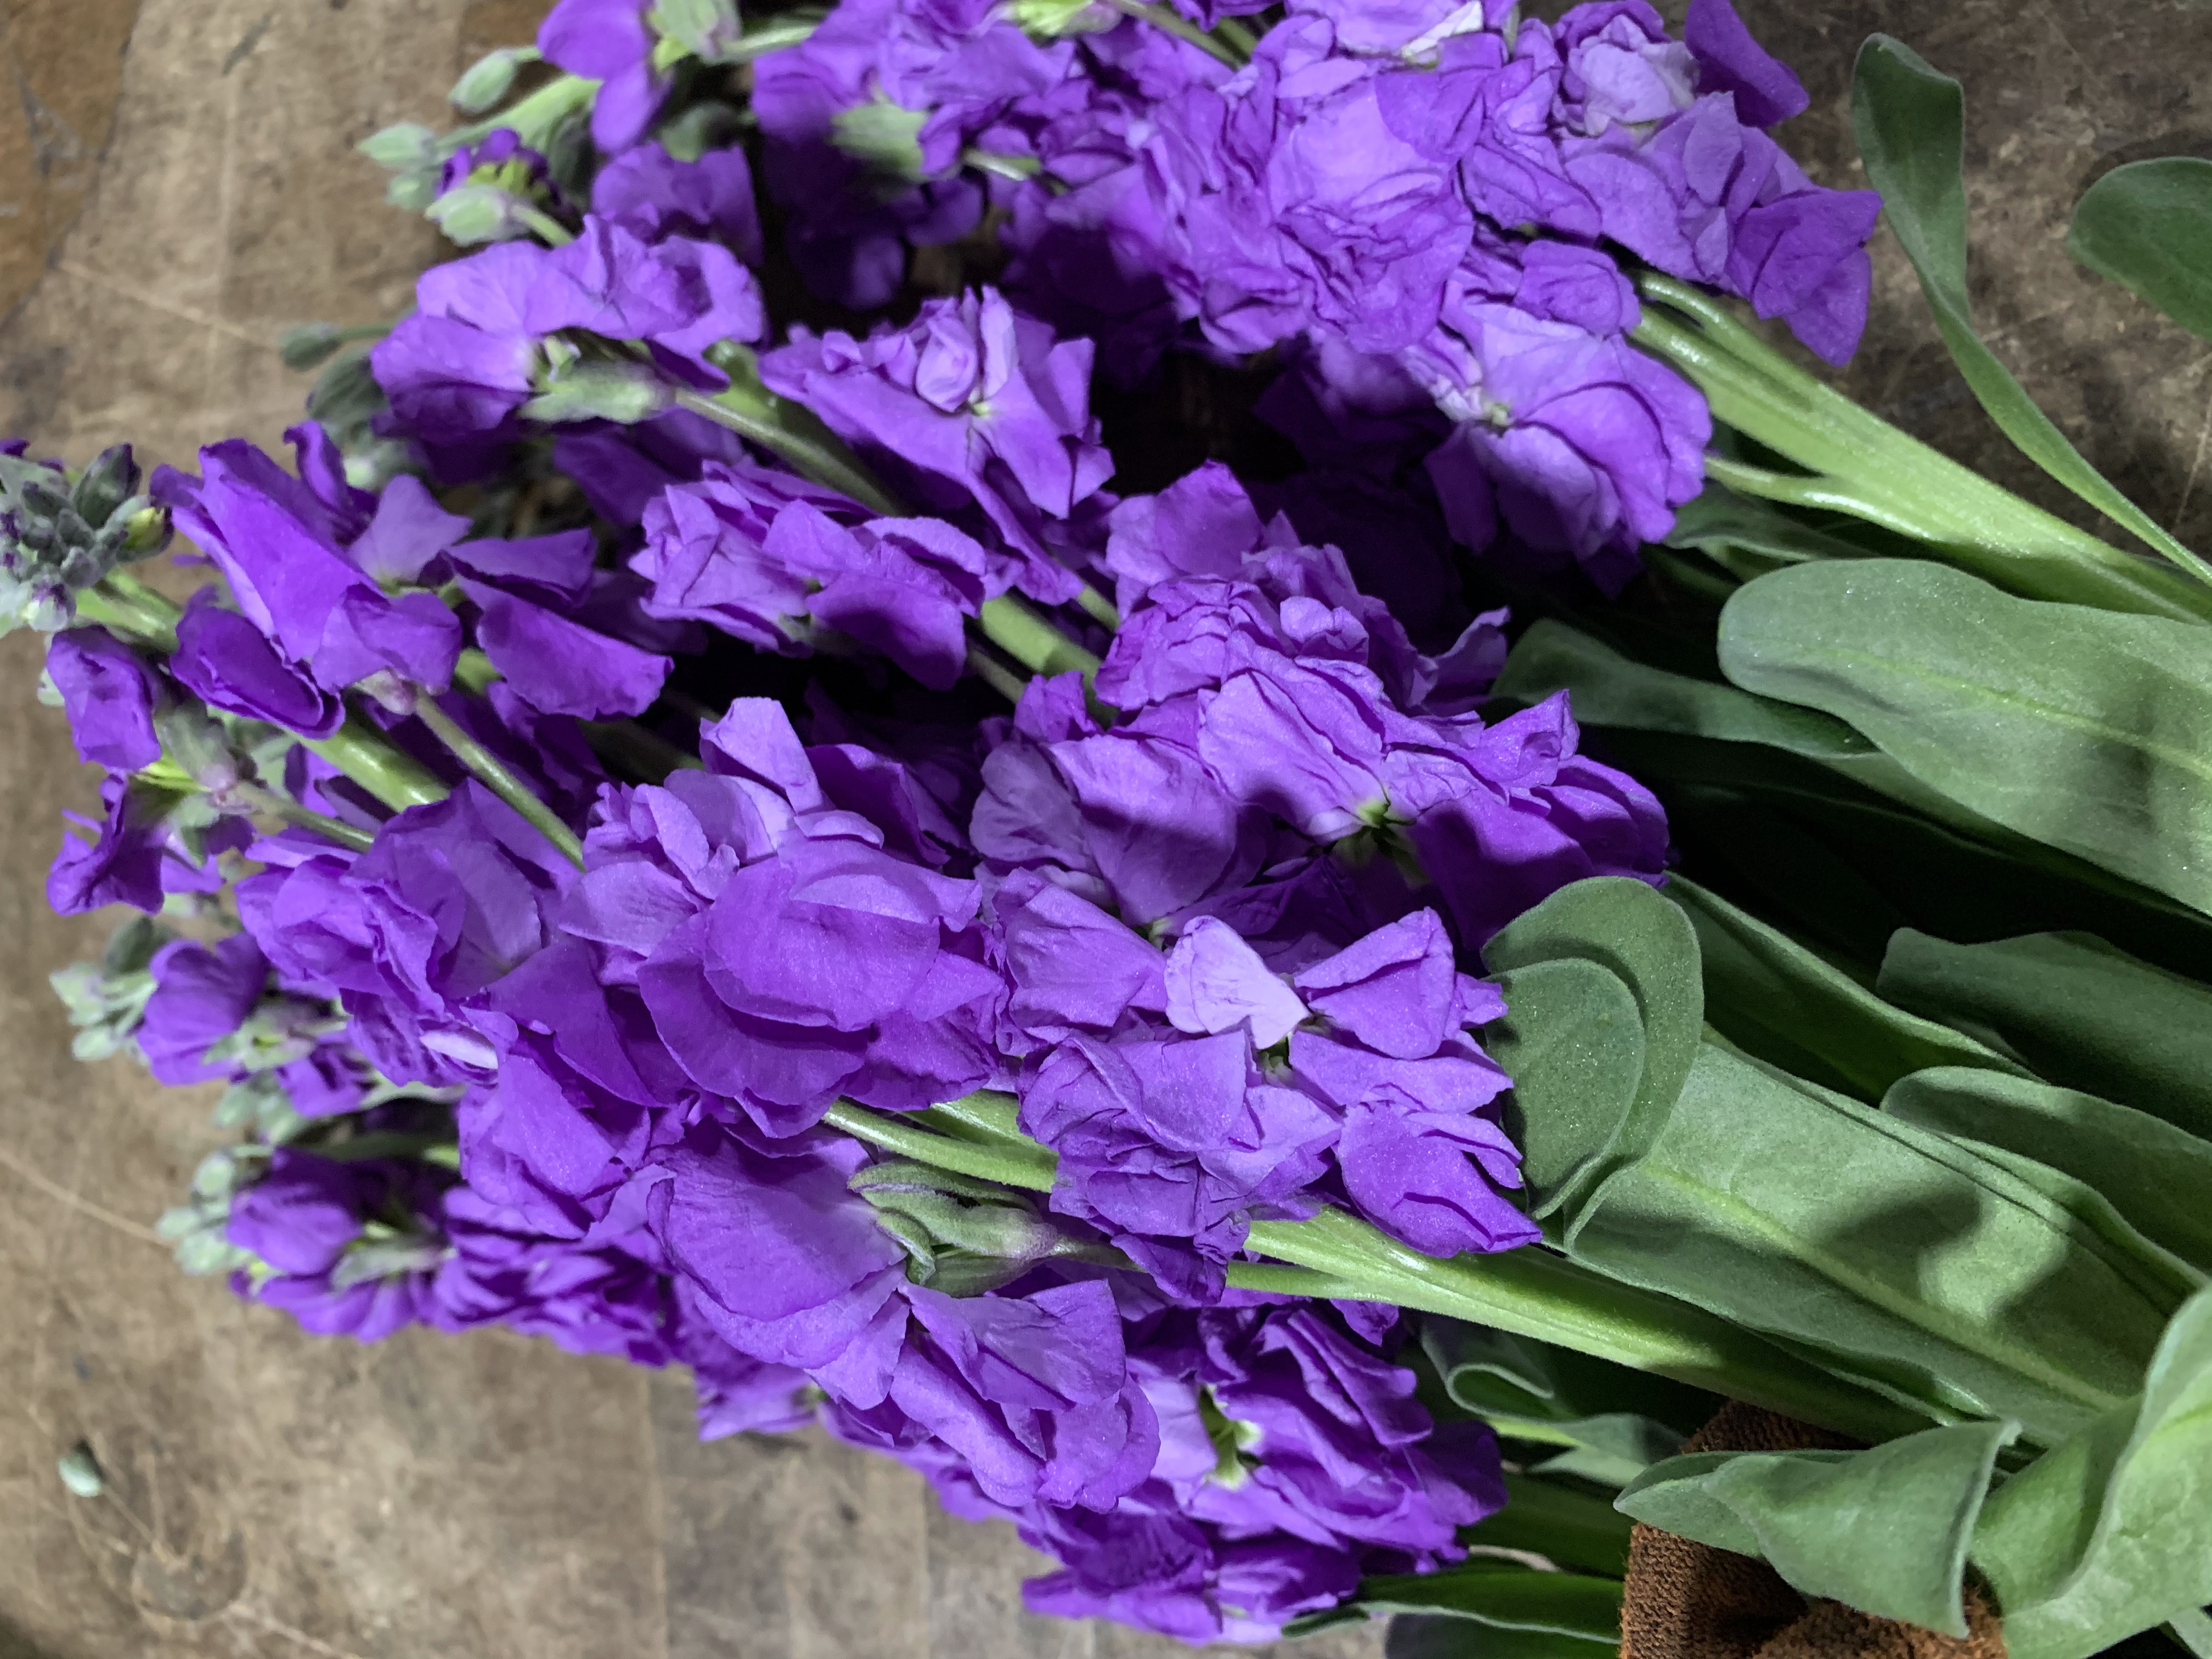 purple  double stock  flowers and fillers  flowers by category, Beautiful flower